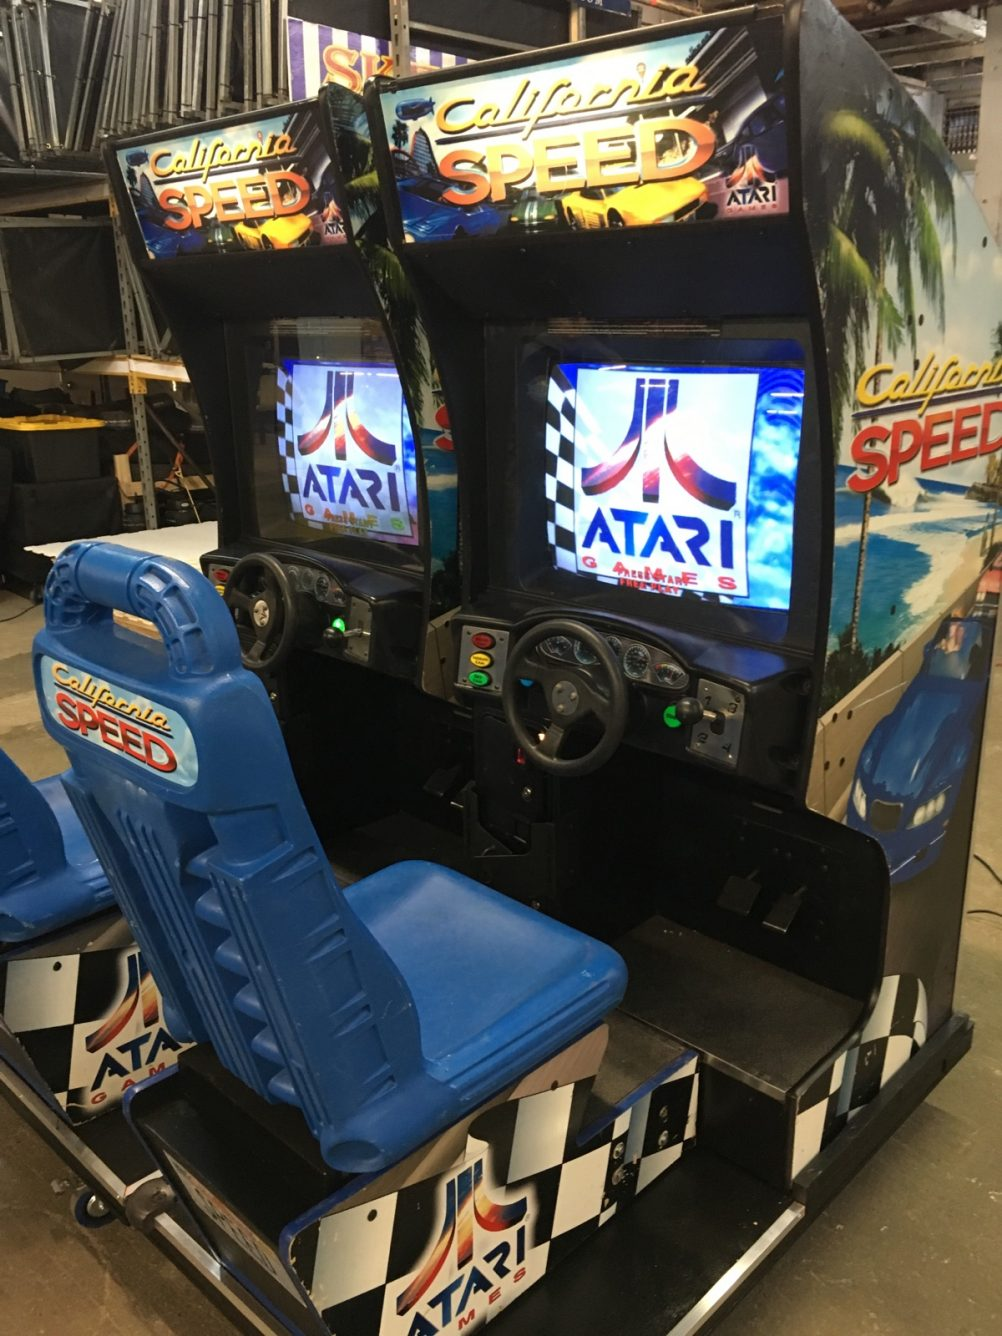 boston_party_entertainment_arcade_California Speed (2 Units)_1